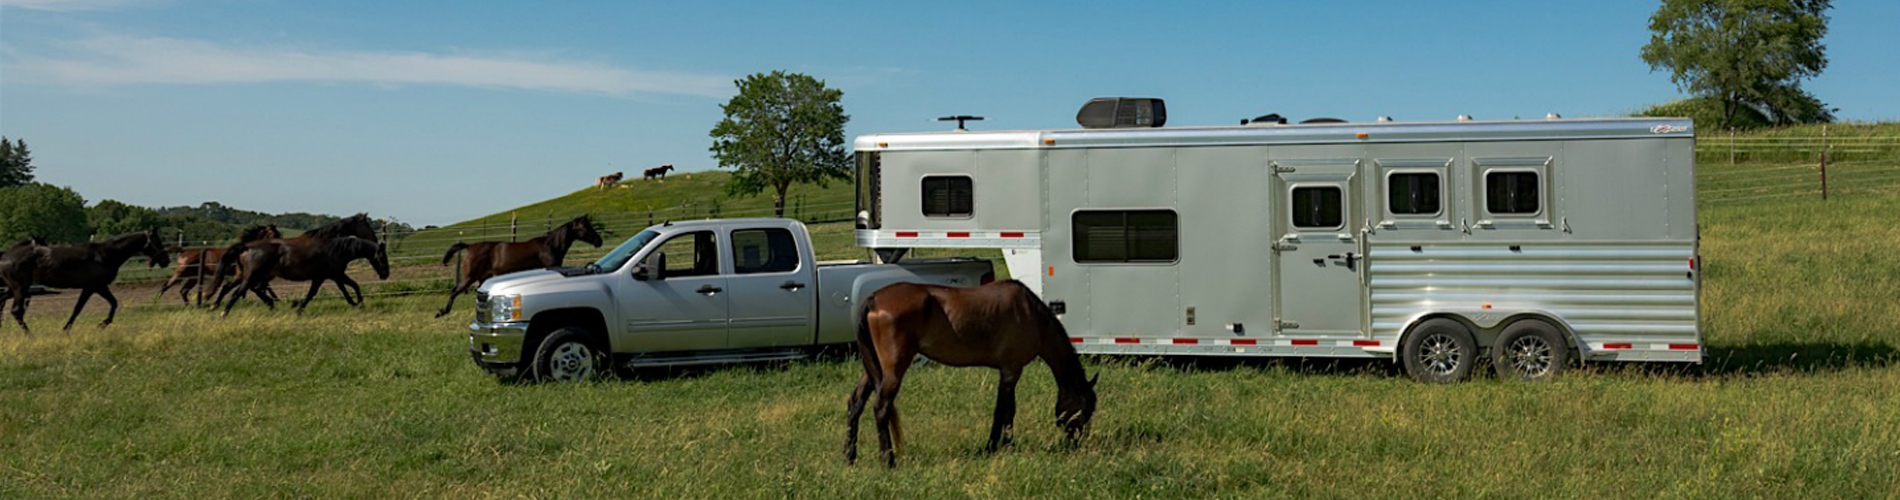 Moderigtigt Home | Livestock and Horse Trailers in NY | KeyRD 2, 3 and 4 Horse WV04